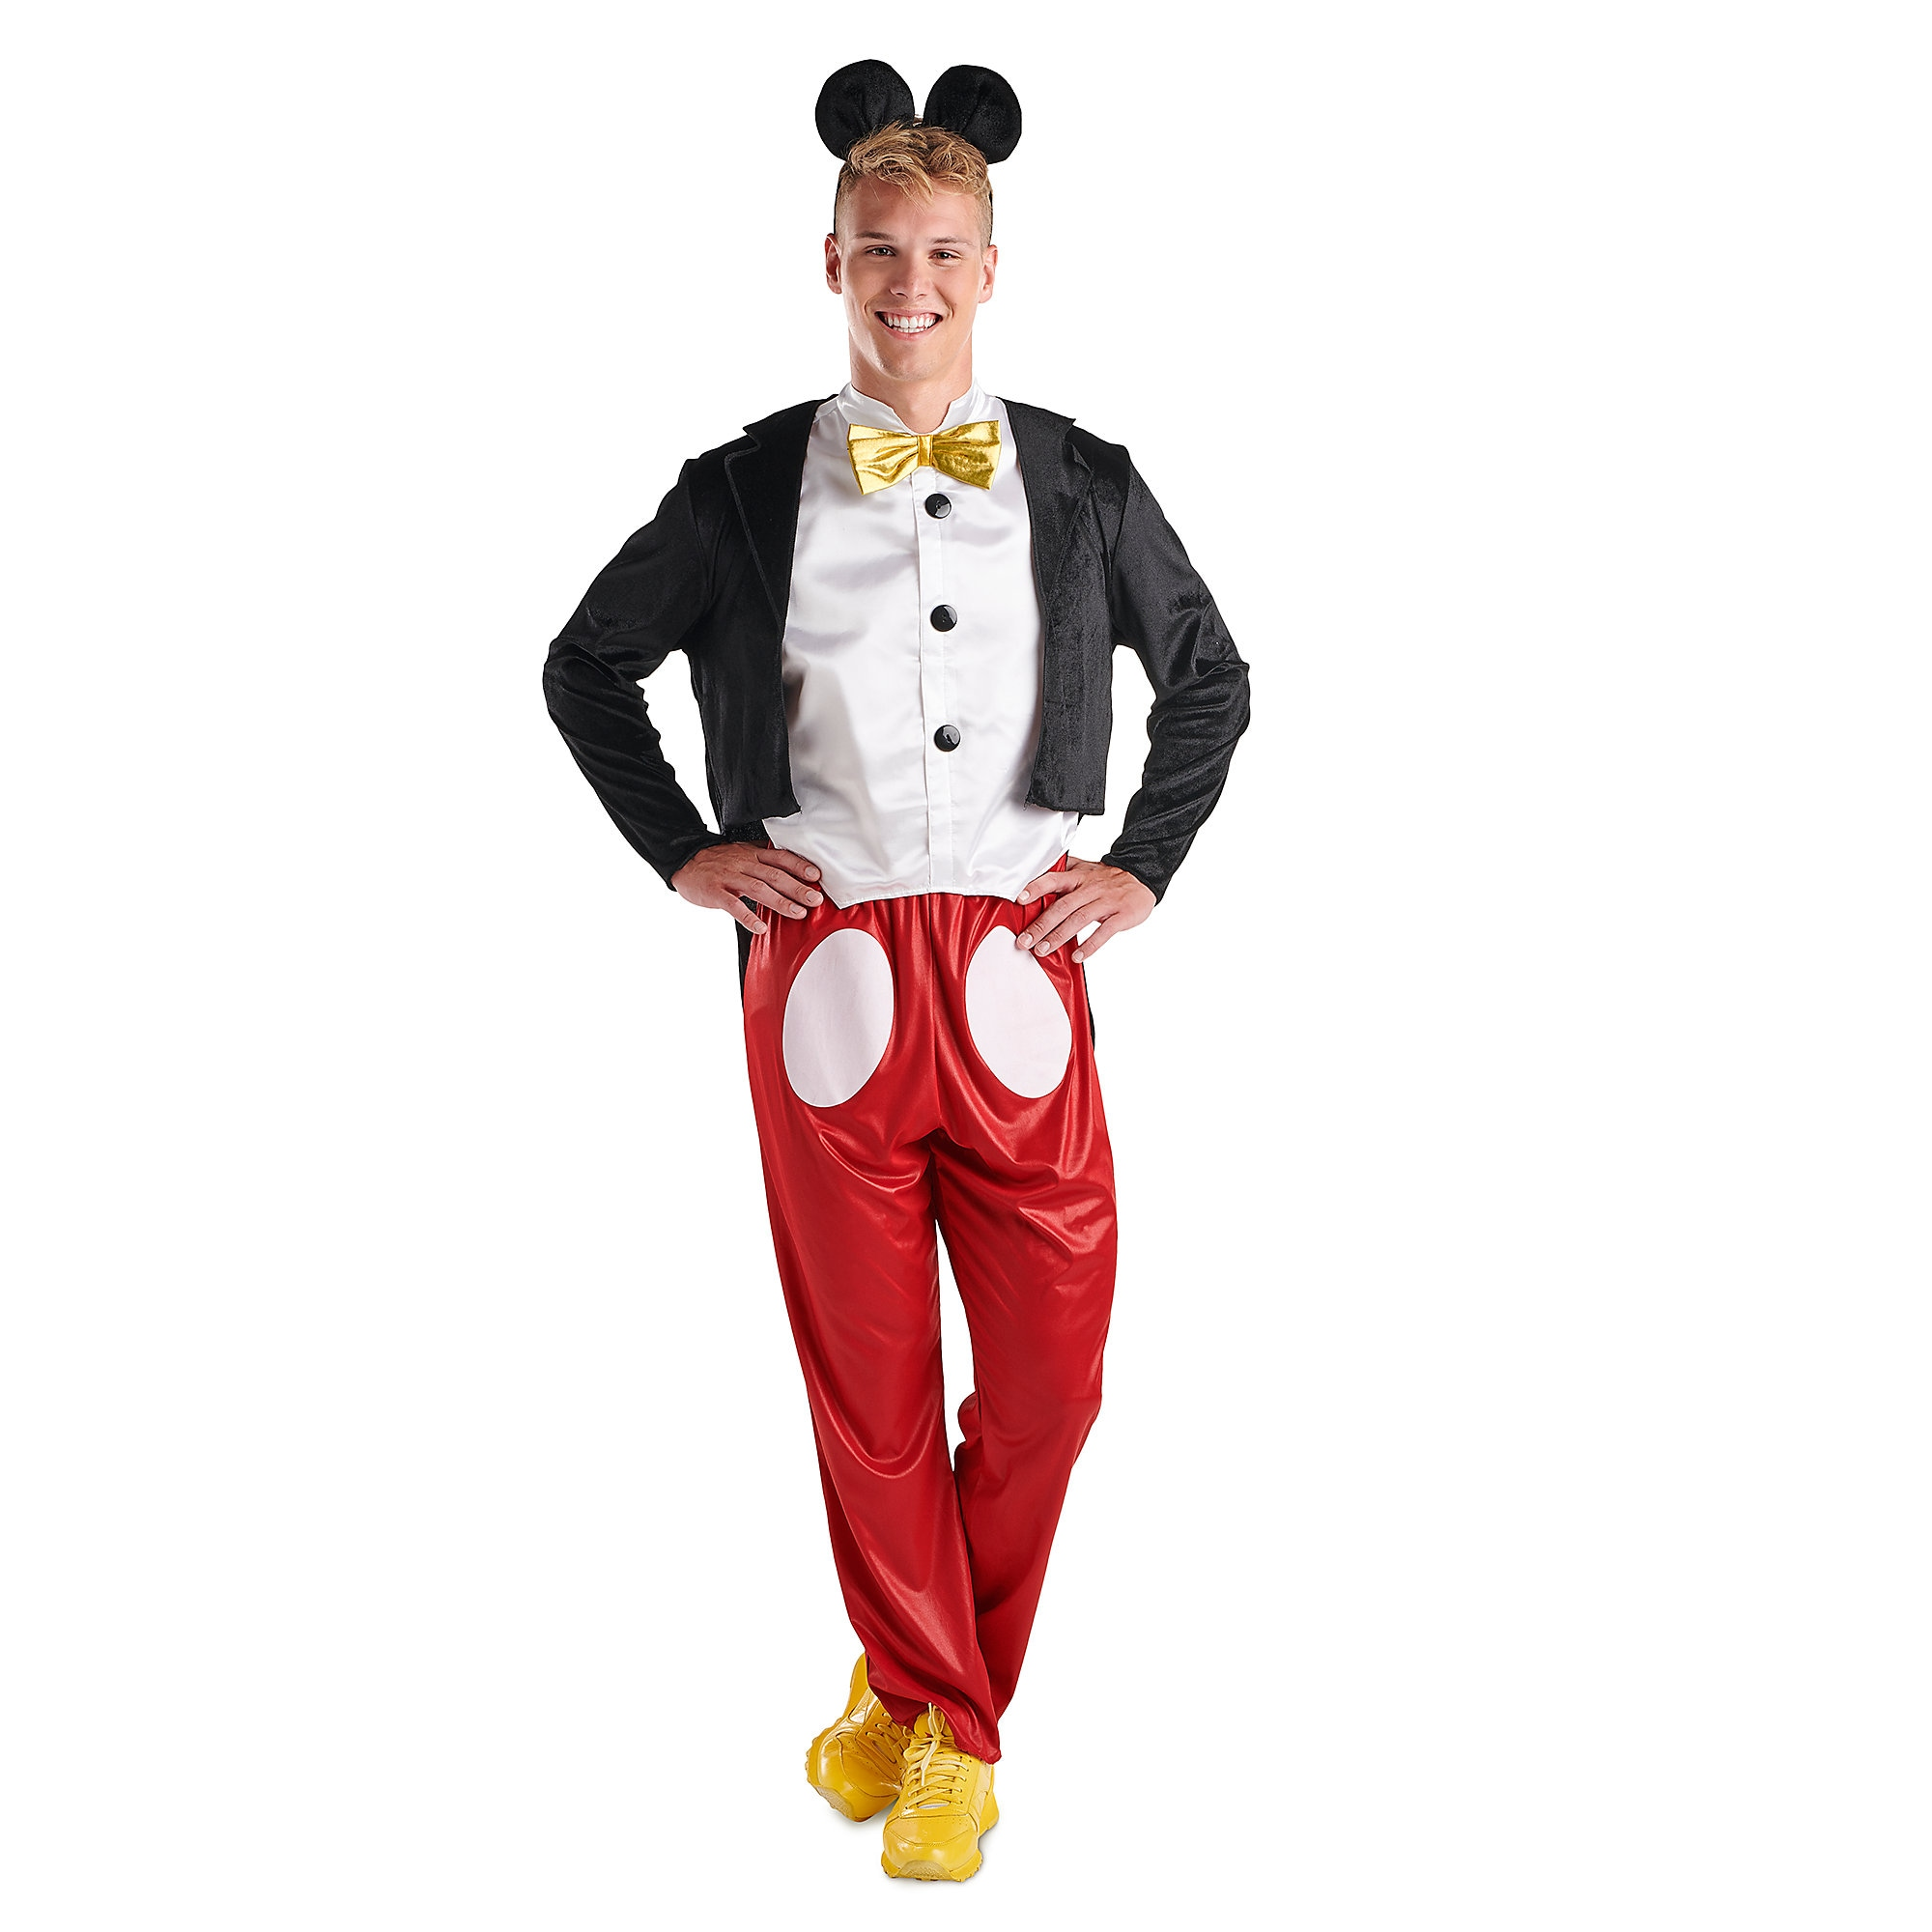 Mickey Mouse Costume for Adults by Disguise  sc 1 st  shopDisney & Mickey Mouse Costume for Adults by Disguise | shopDisney